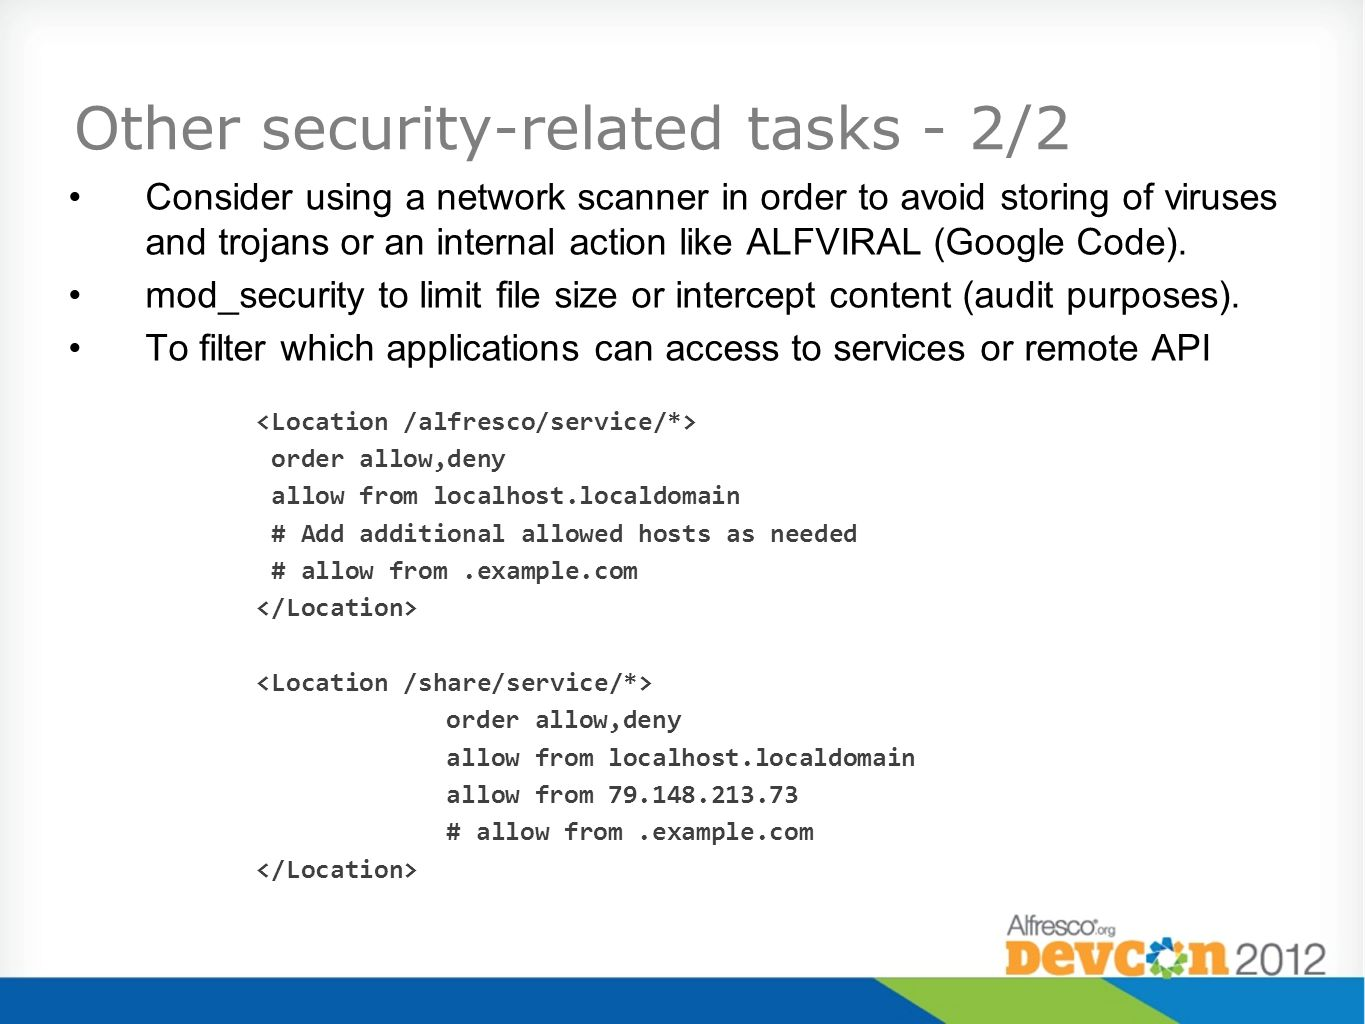 Other security-related tasks - 2/2